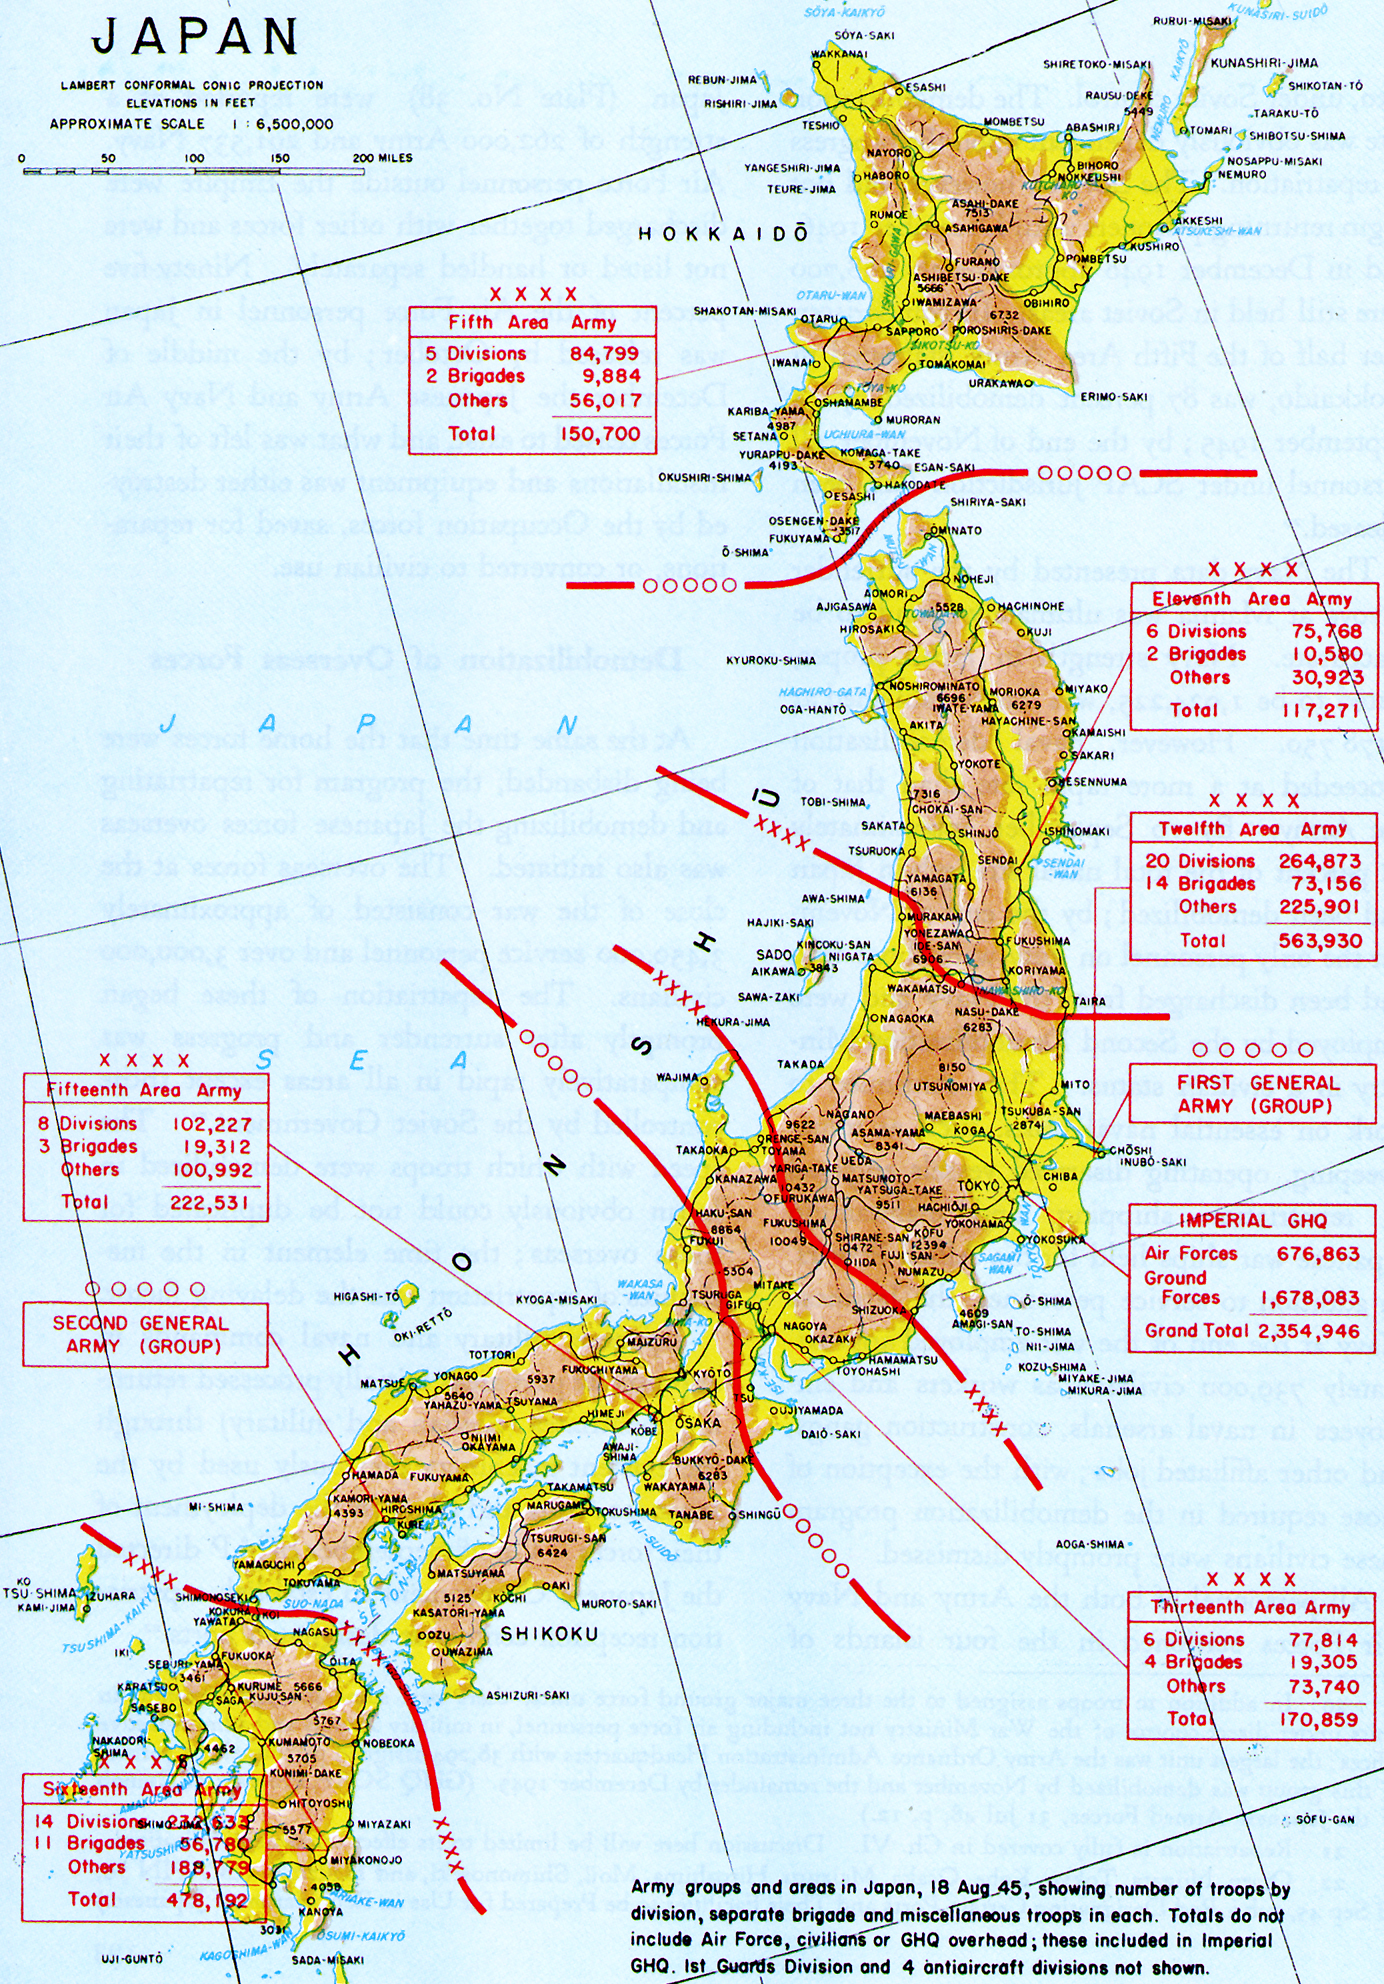 FileMap of Japanese Army Ground Forces in the home islands August